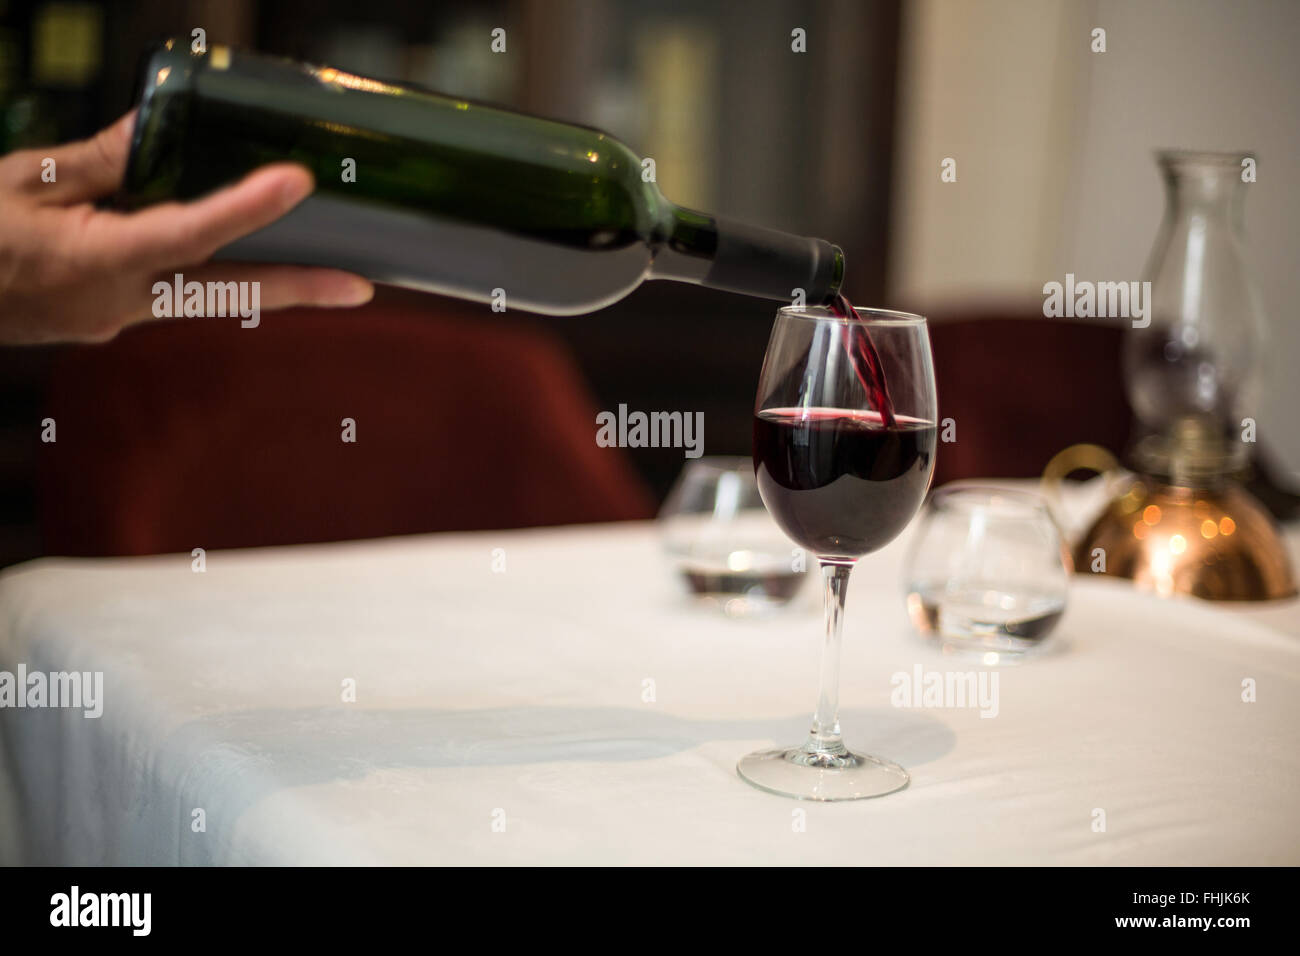 Waiter pouring a glass of red wine - Stock Image